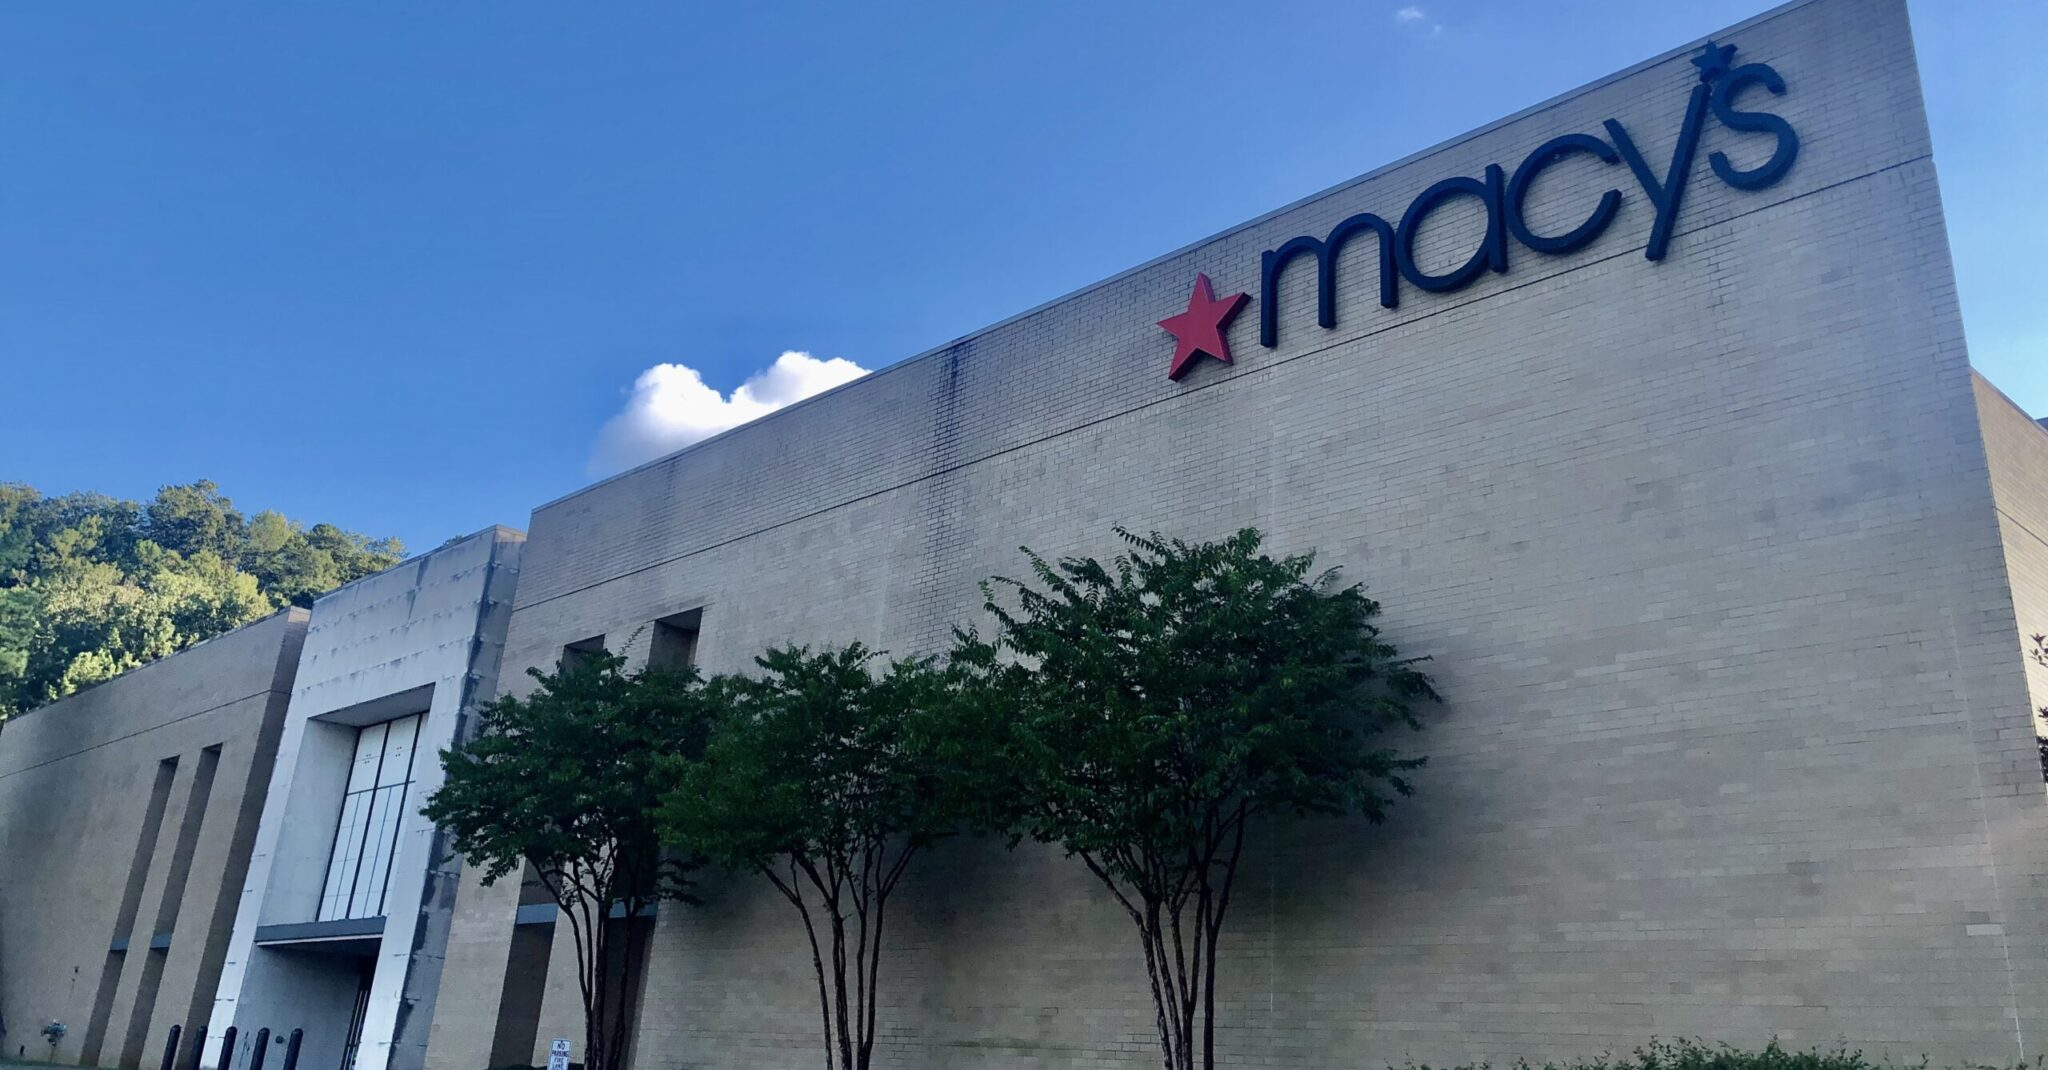 Brookwood Village Macy's property acquired. What's next for the iconic mall?